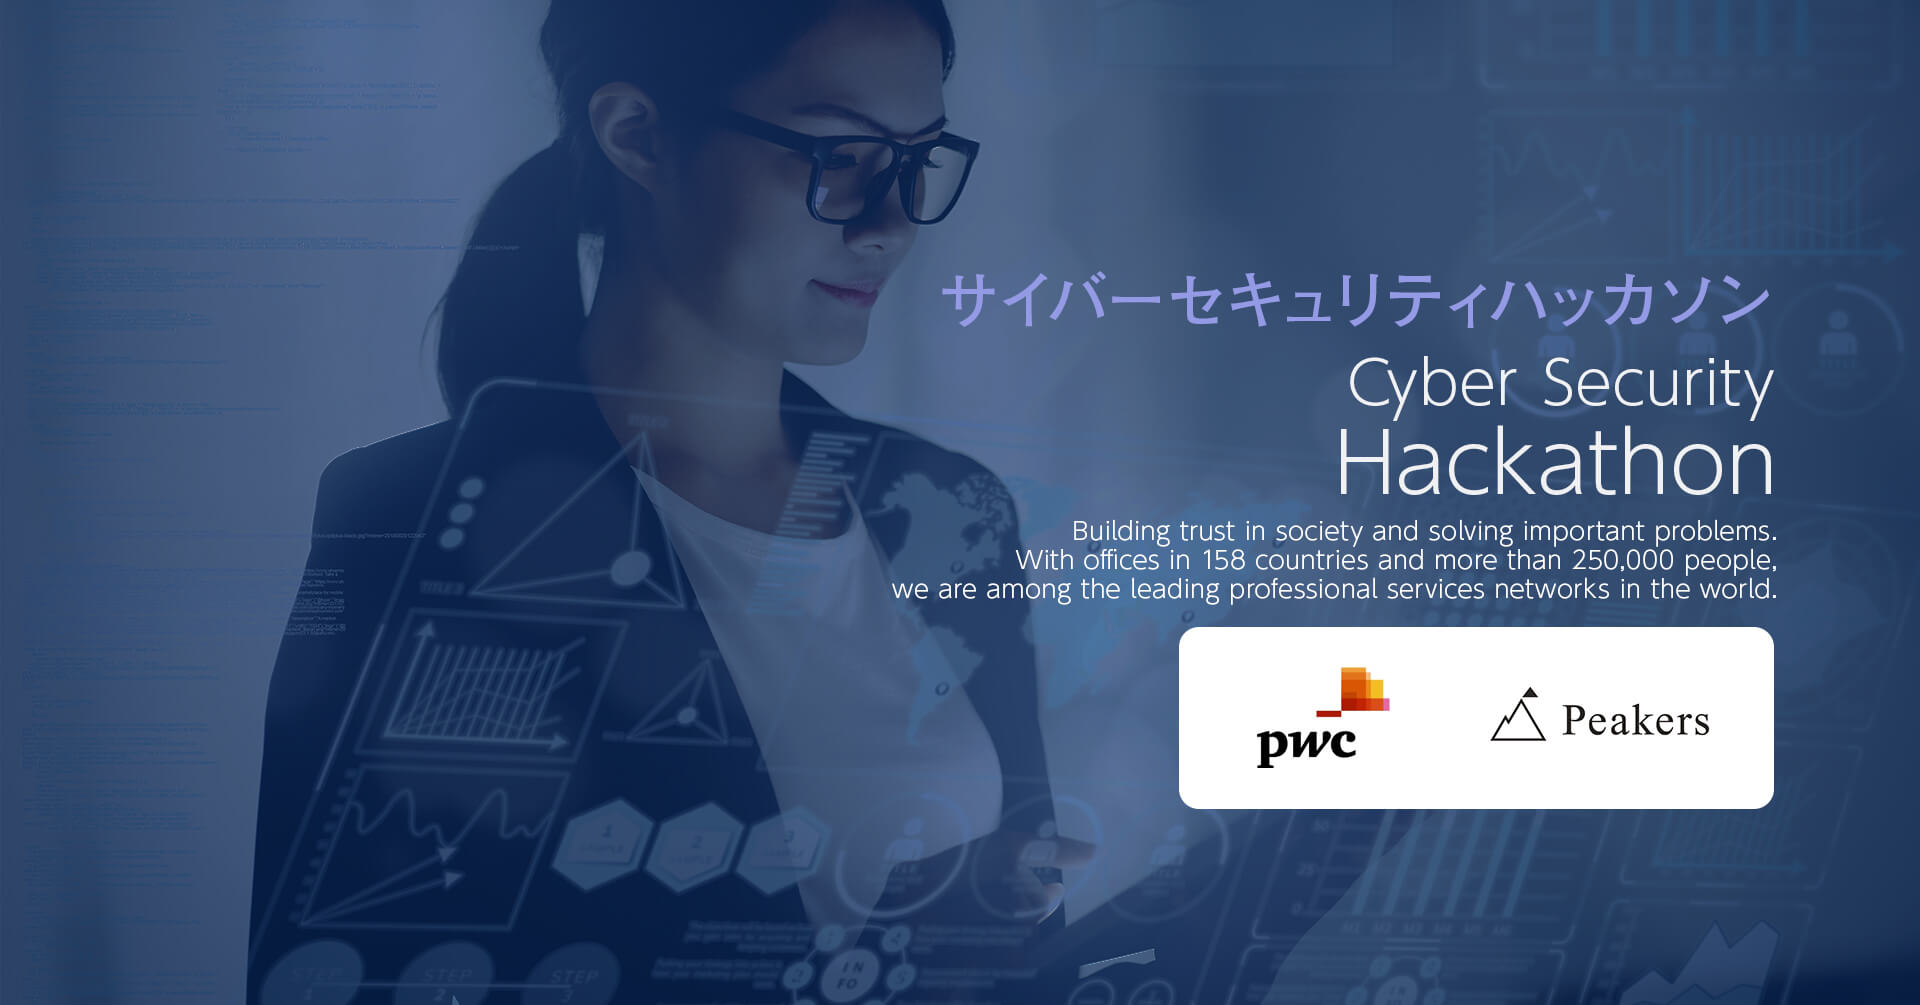 PwC's Cyber Security Hackathon ×Peakers